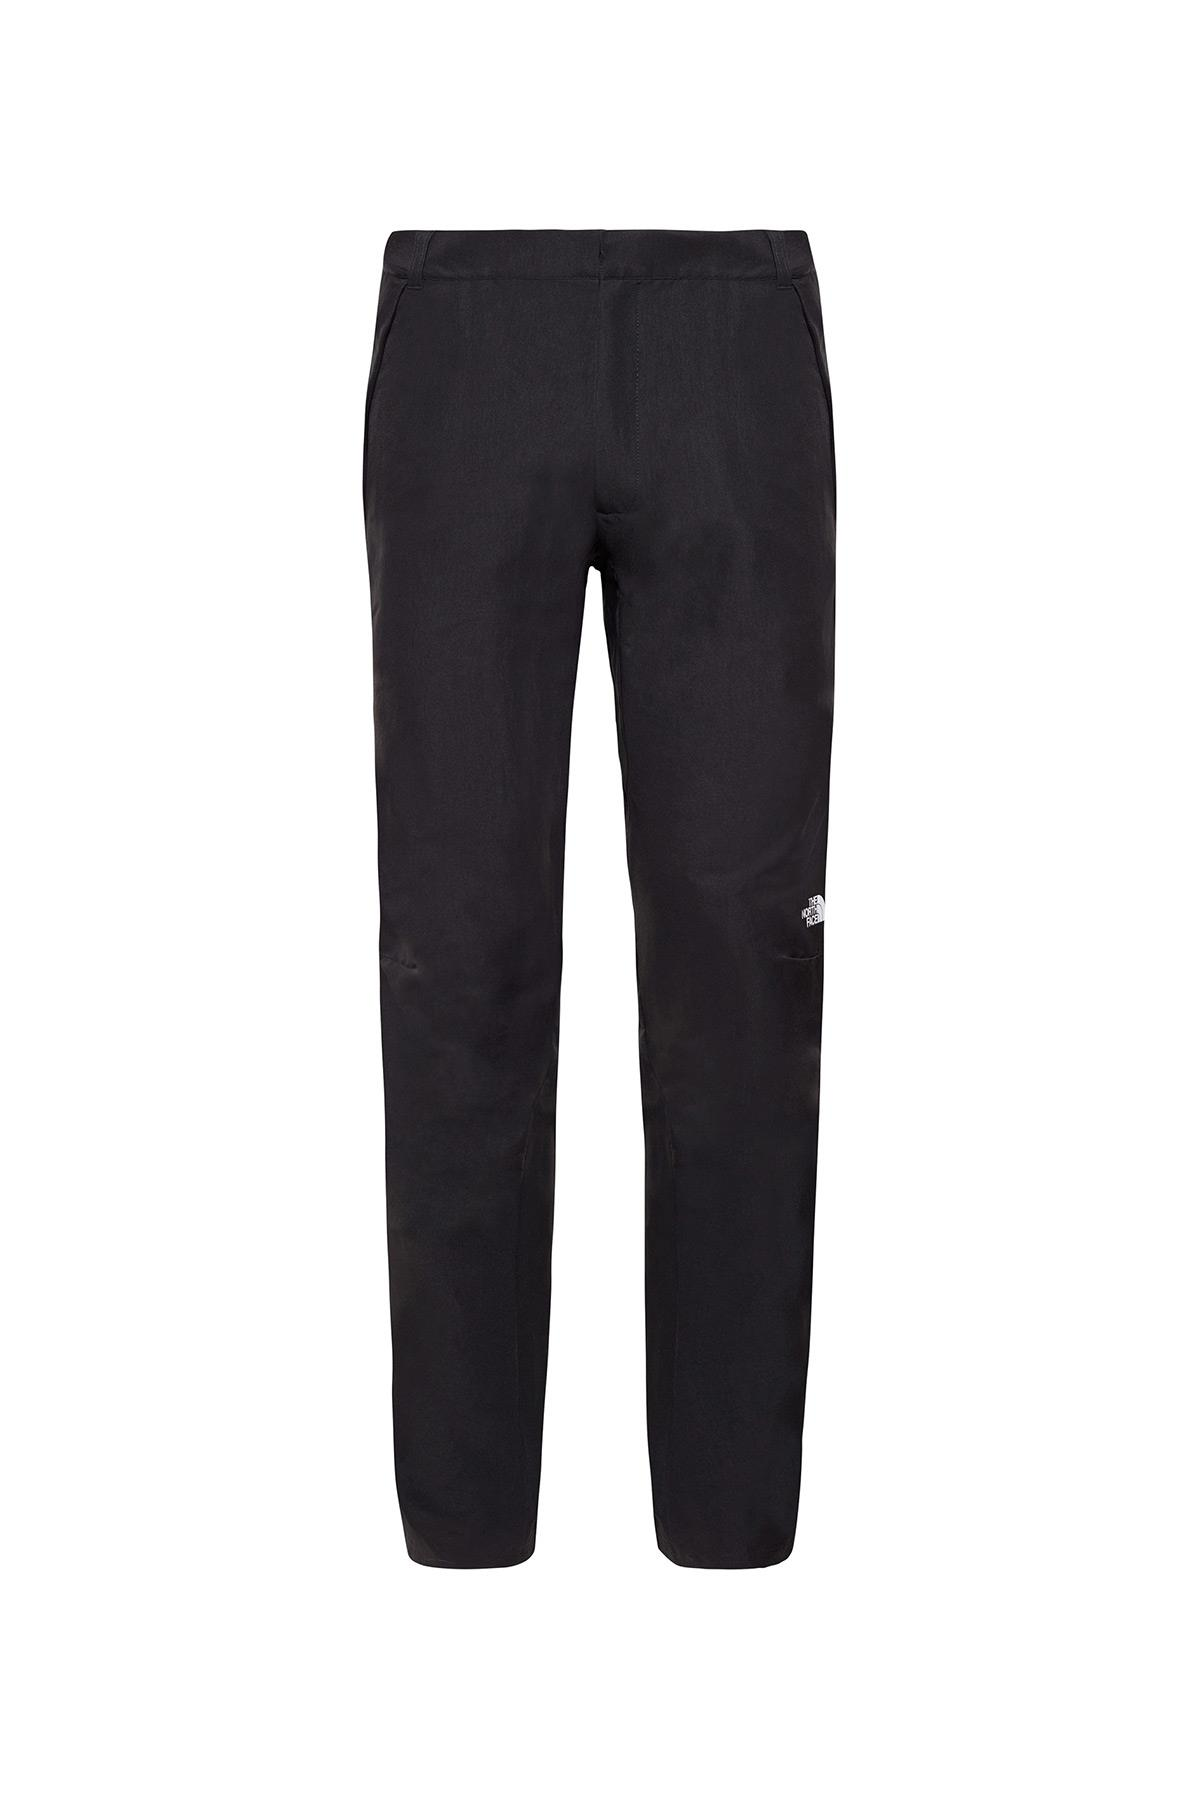 The Northface Erkek Apex Pant T93Rzsjk3 Pantolon